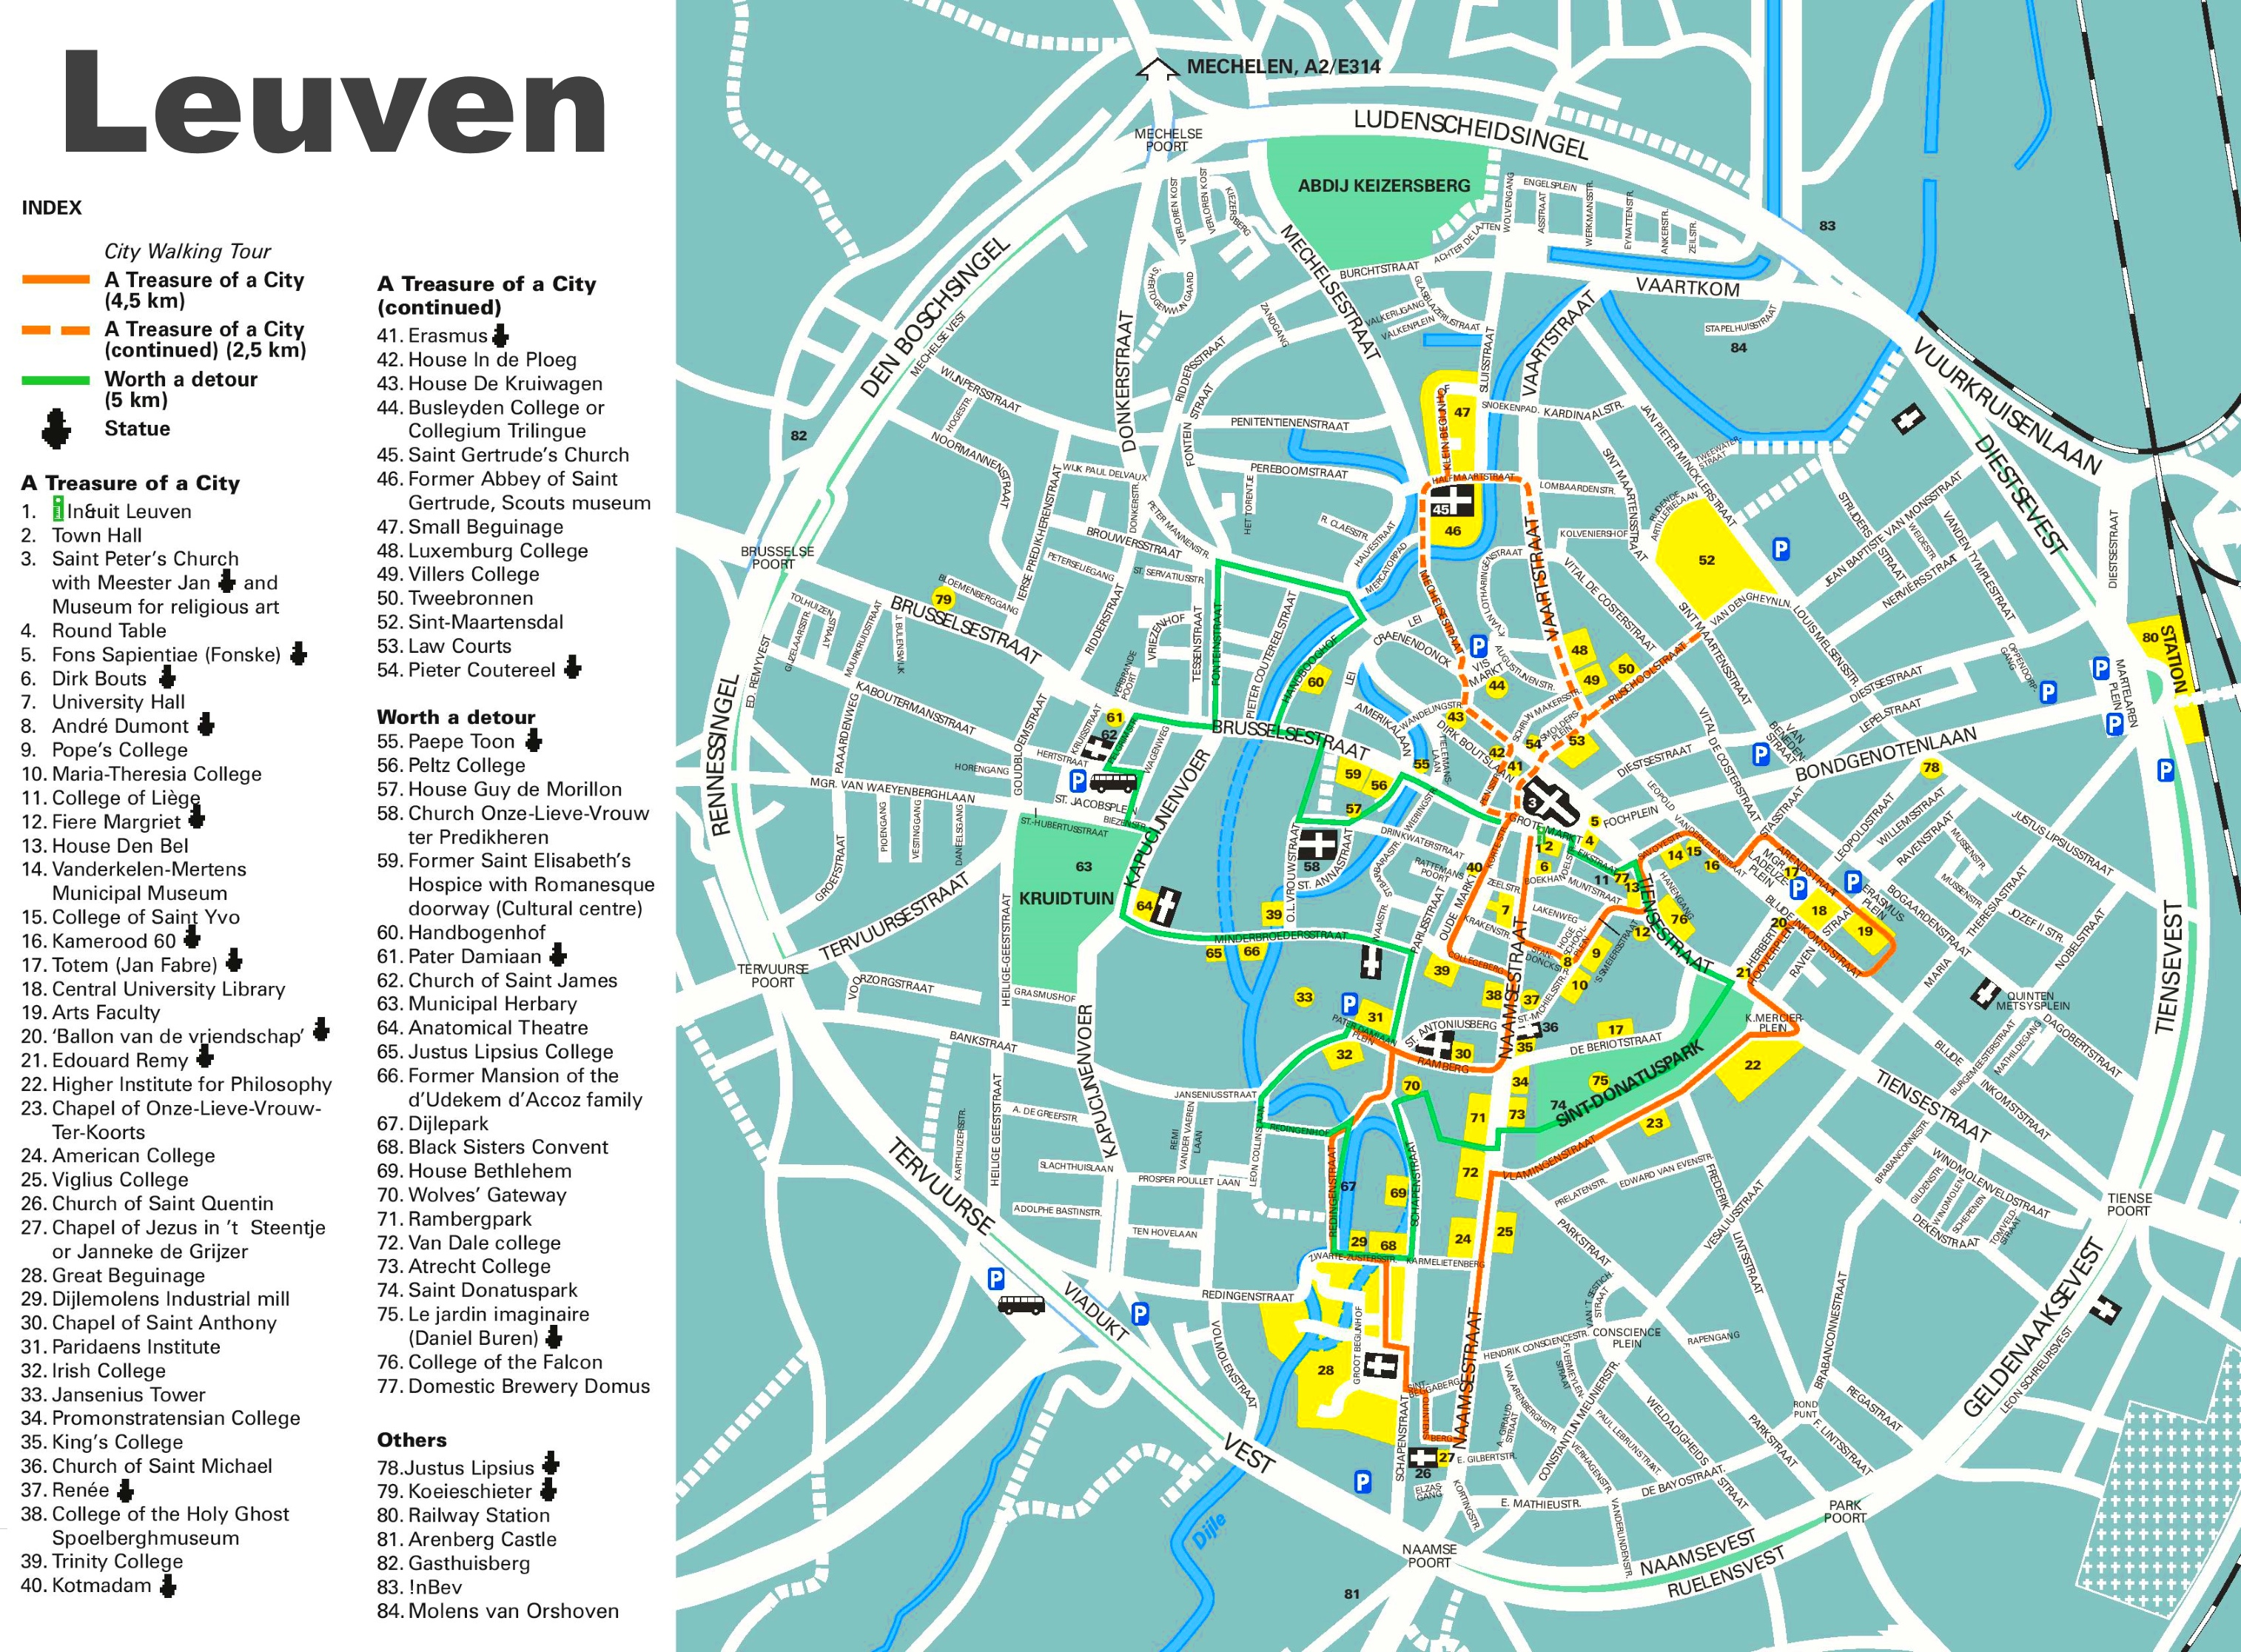 Leuven tourist map